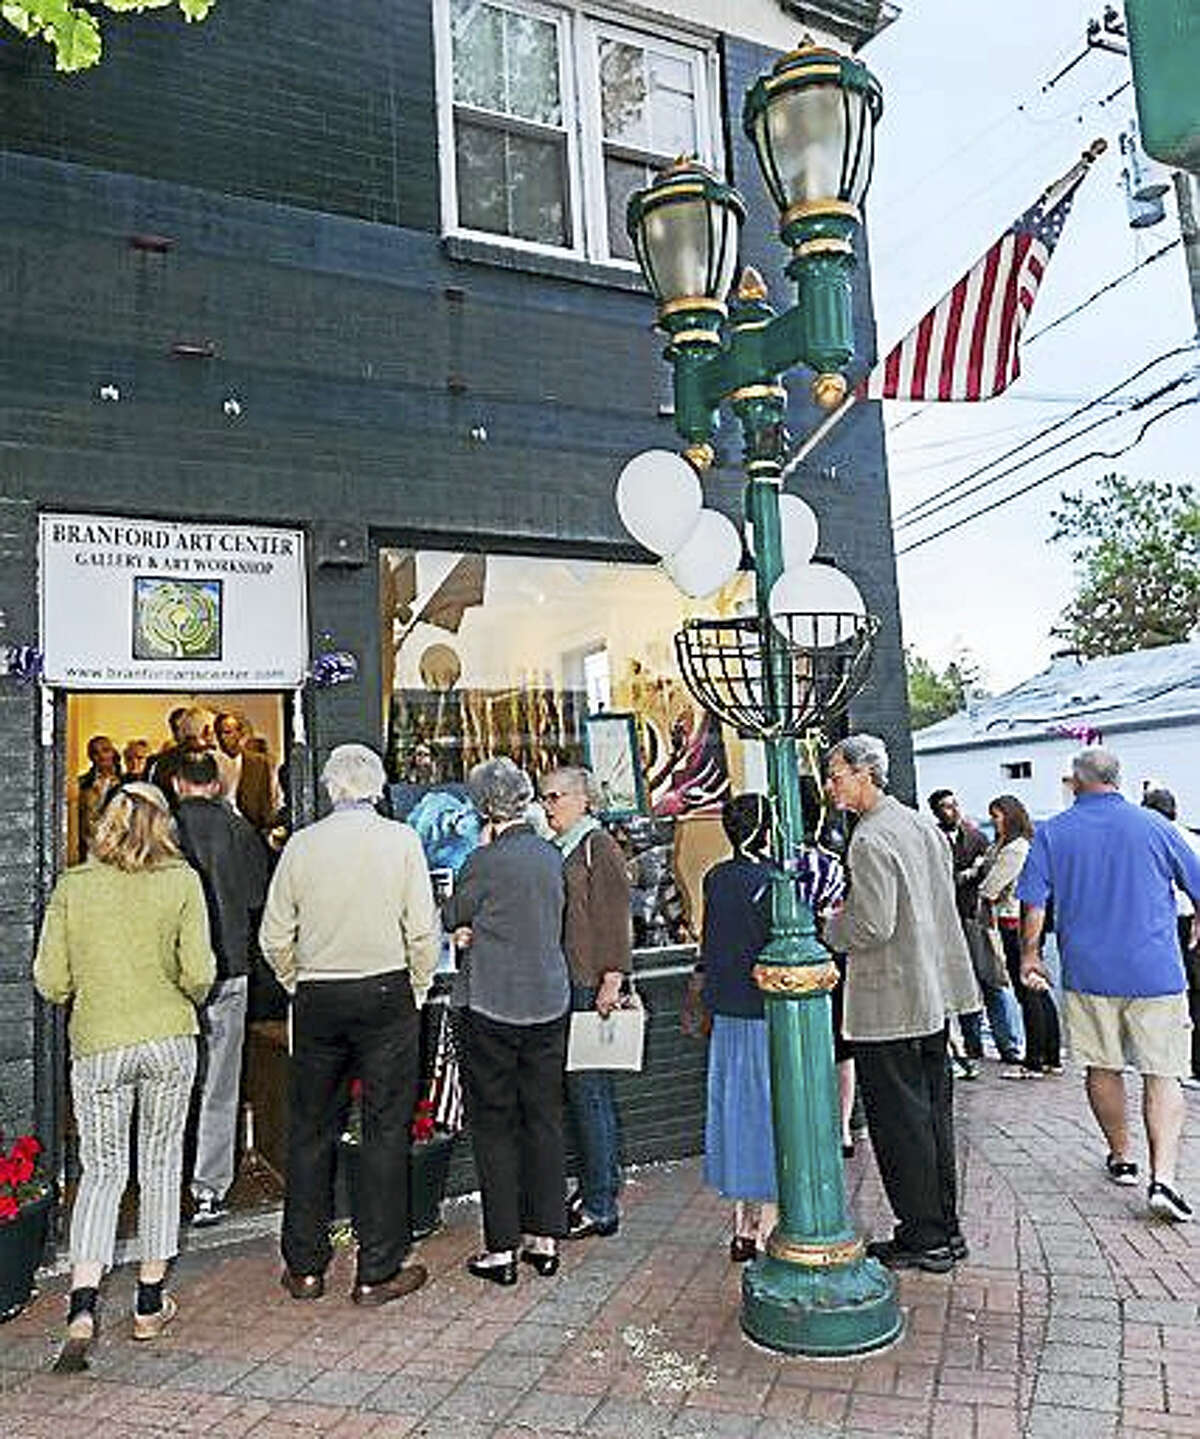 The Gallery Hop will be similar to the Shoreline Arts Trail.